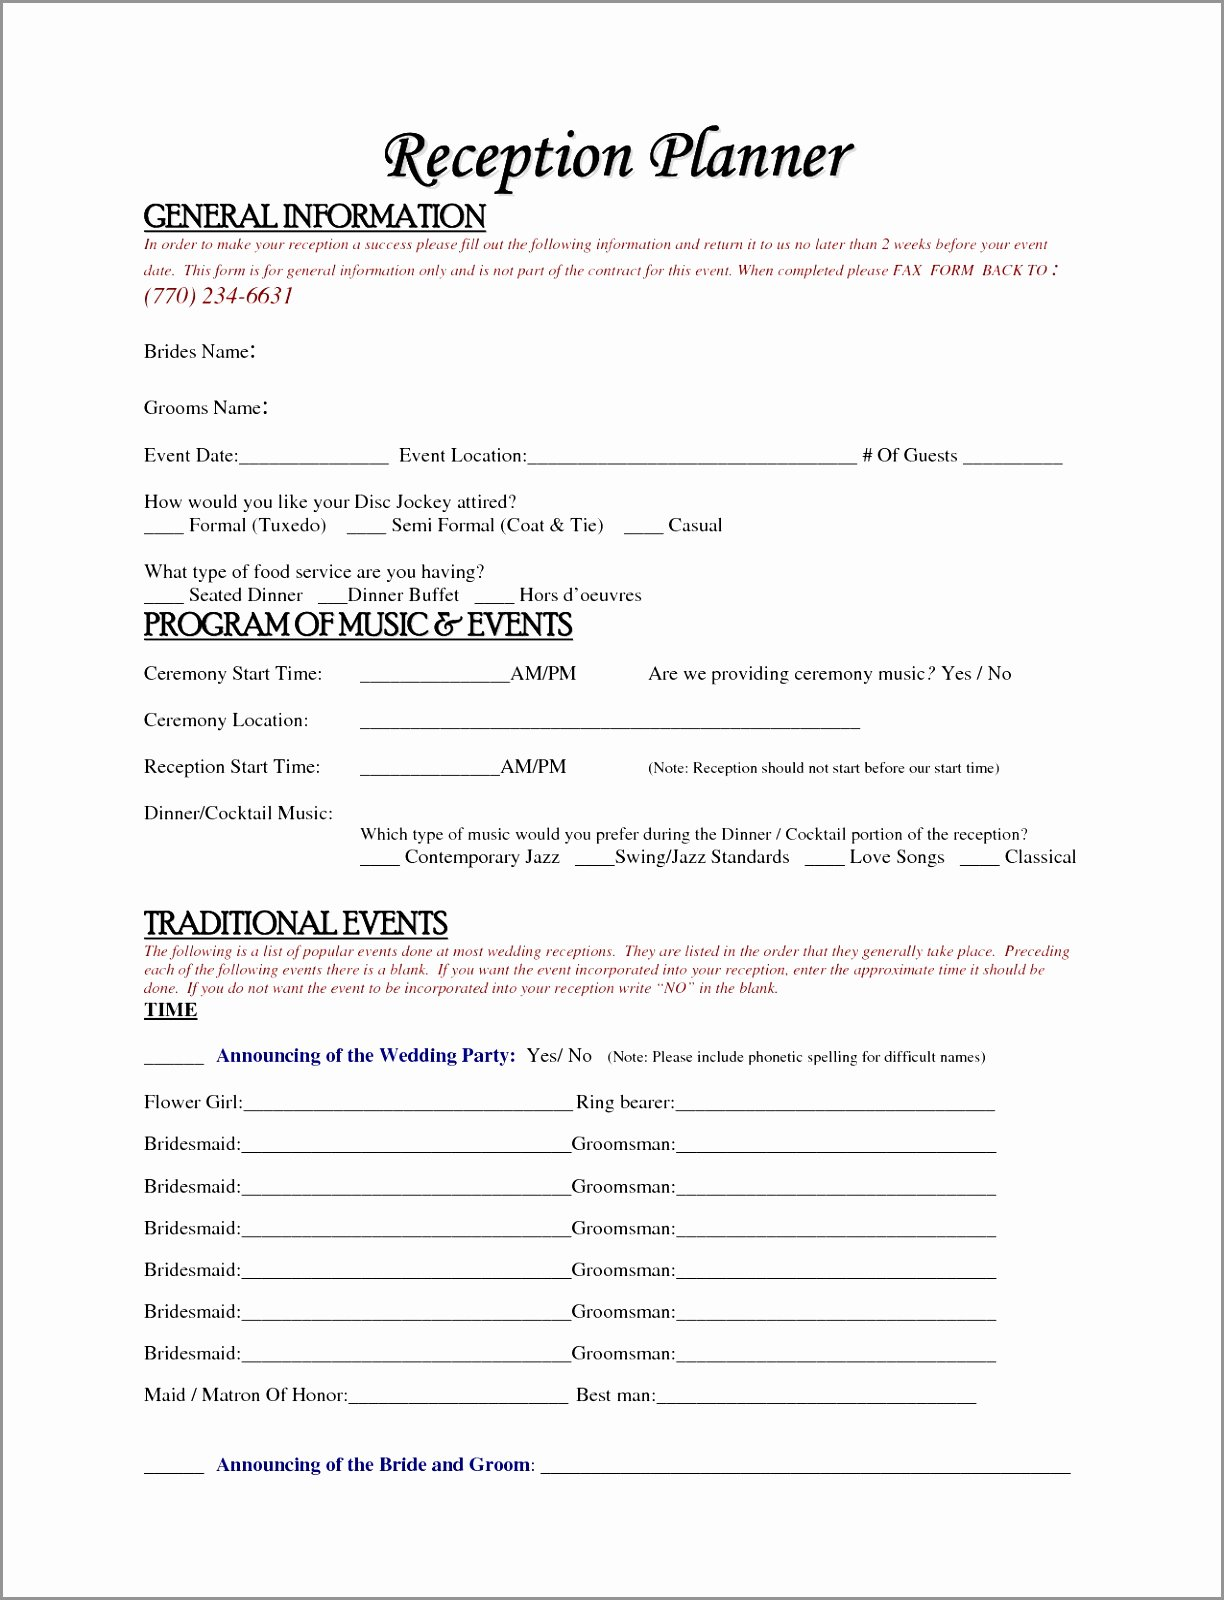 Dj Contract Template Microsoft Word Lovely 5 Wedding Dj Playlist Template Utowo